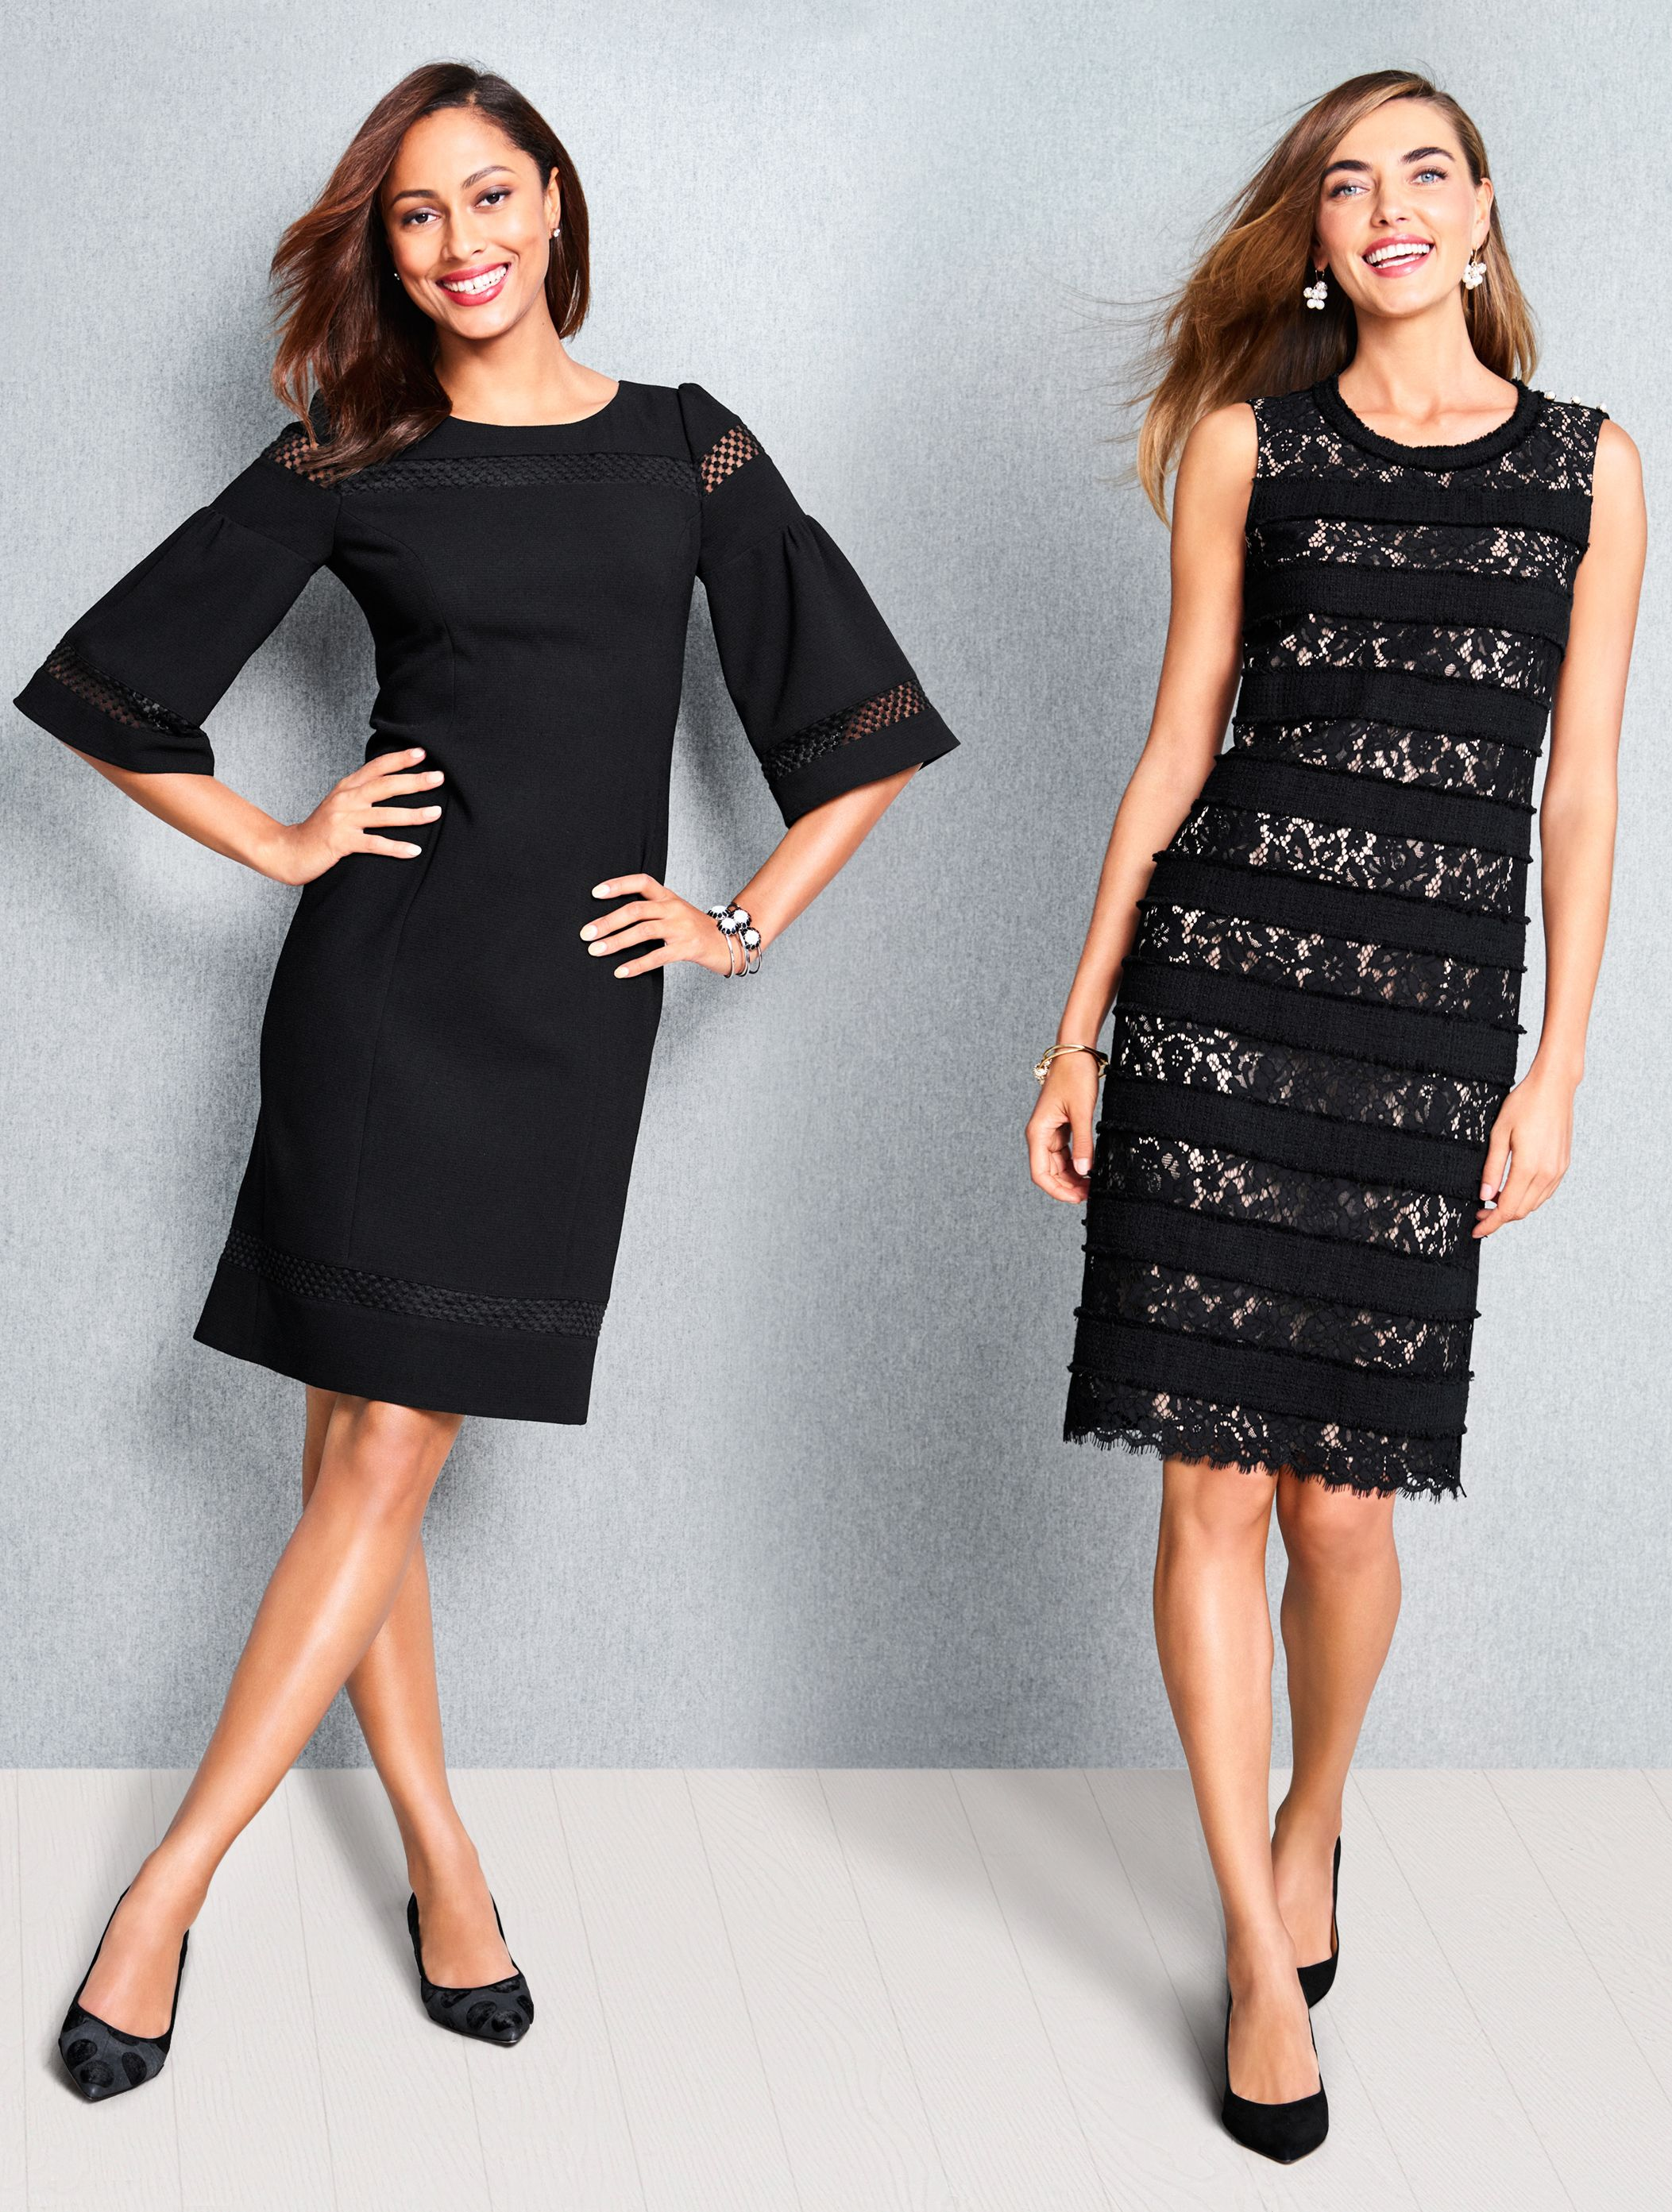 Beautifully Laced With Style The Ultra Feminine Little Black Dress Is Timeless Classic And Perfect For Almost Any Occa Talbots Dress Dresses Cocktail Attire [ 2785 x 2105 Pixel ]